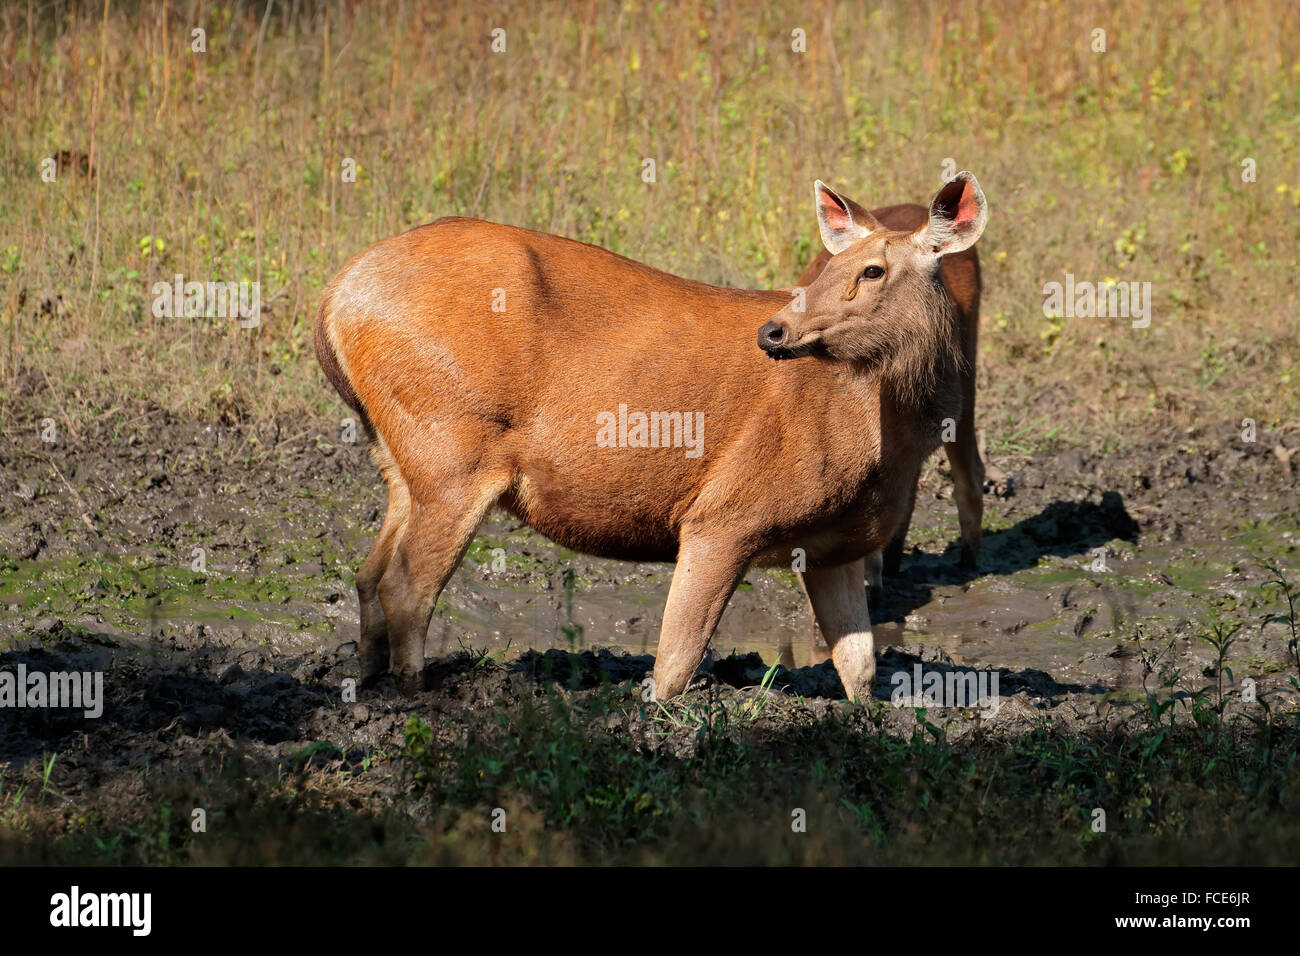 Female sambar deer (Rusa unicolor), Kanha National Park, India - Stock Image